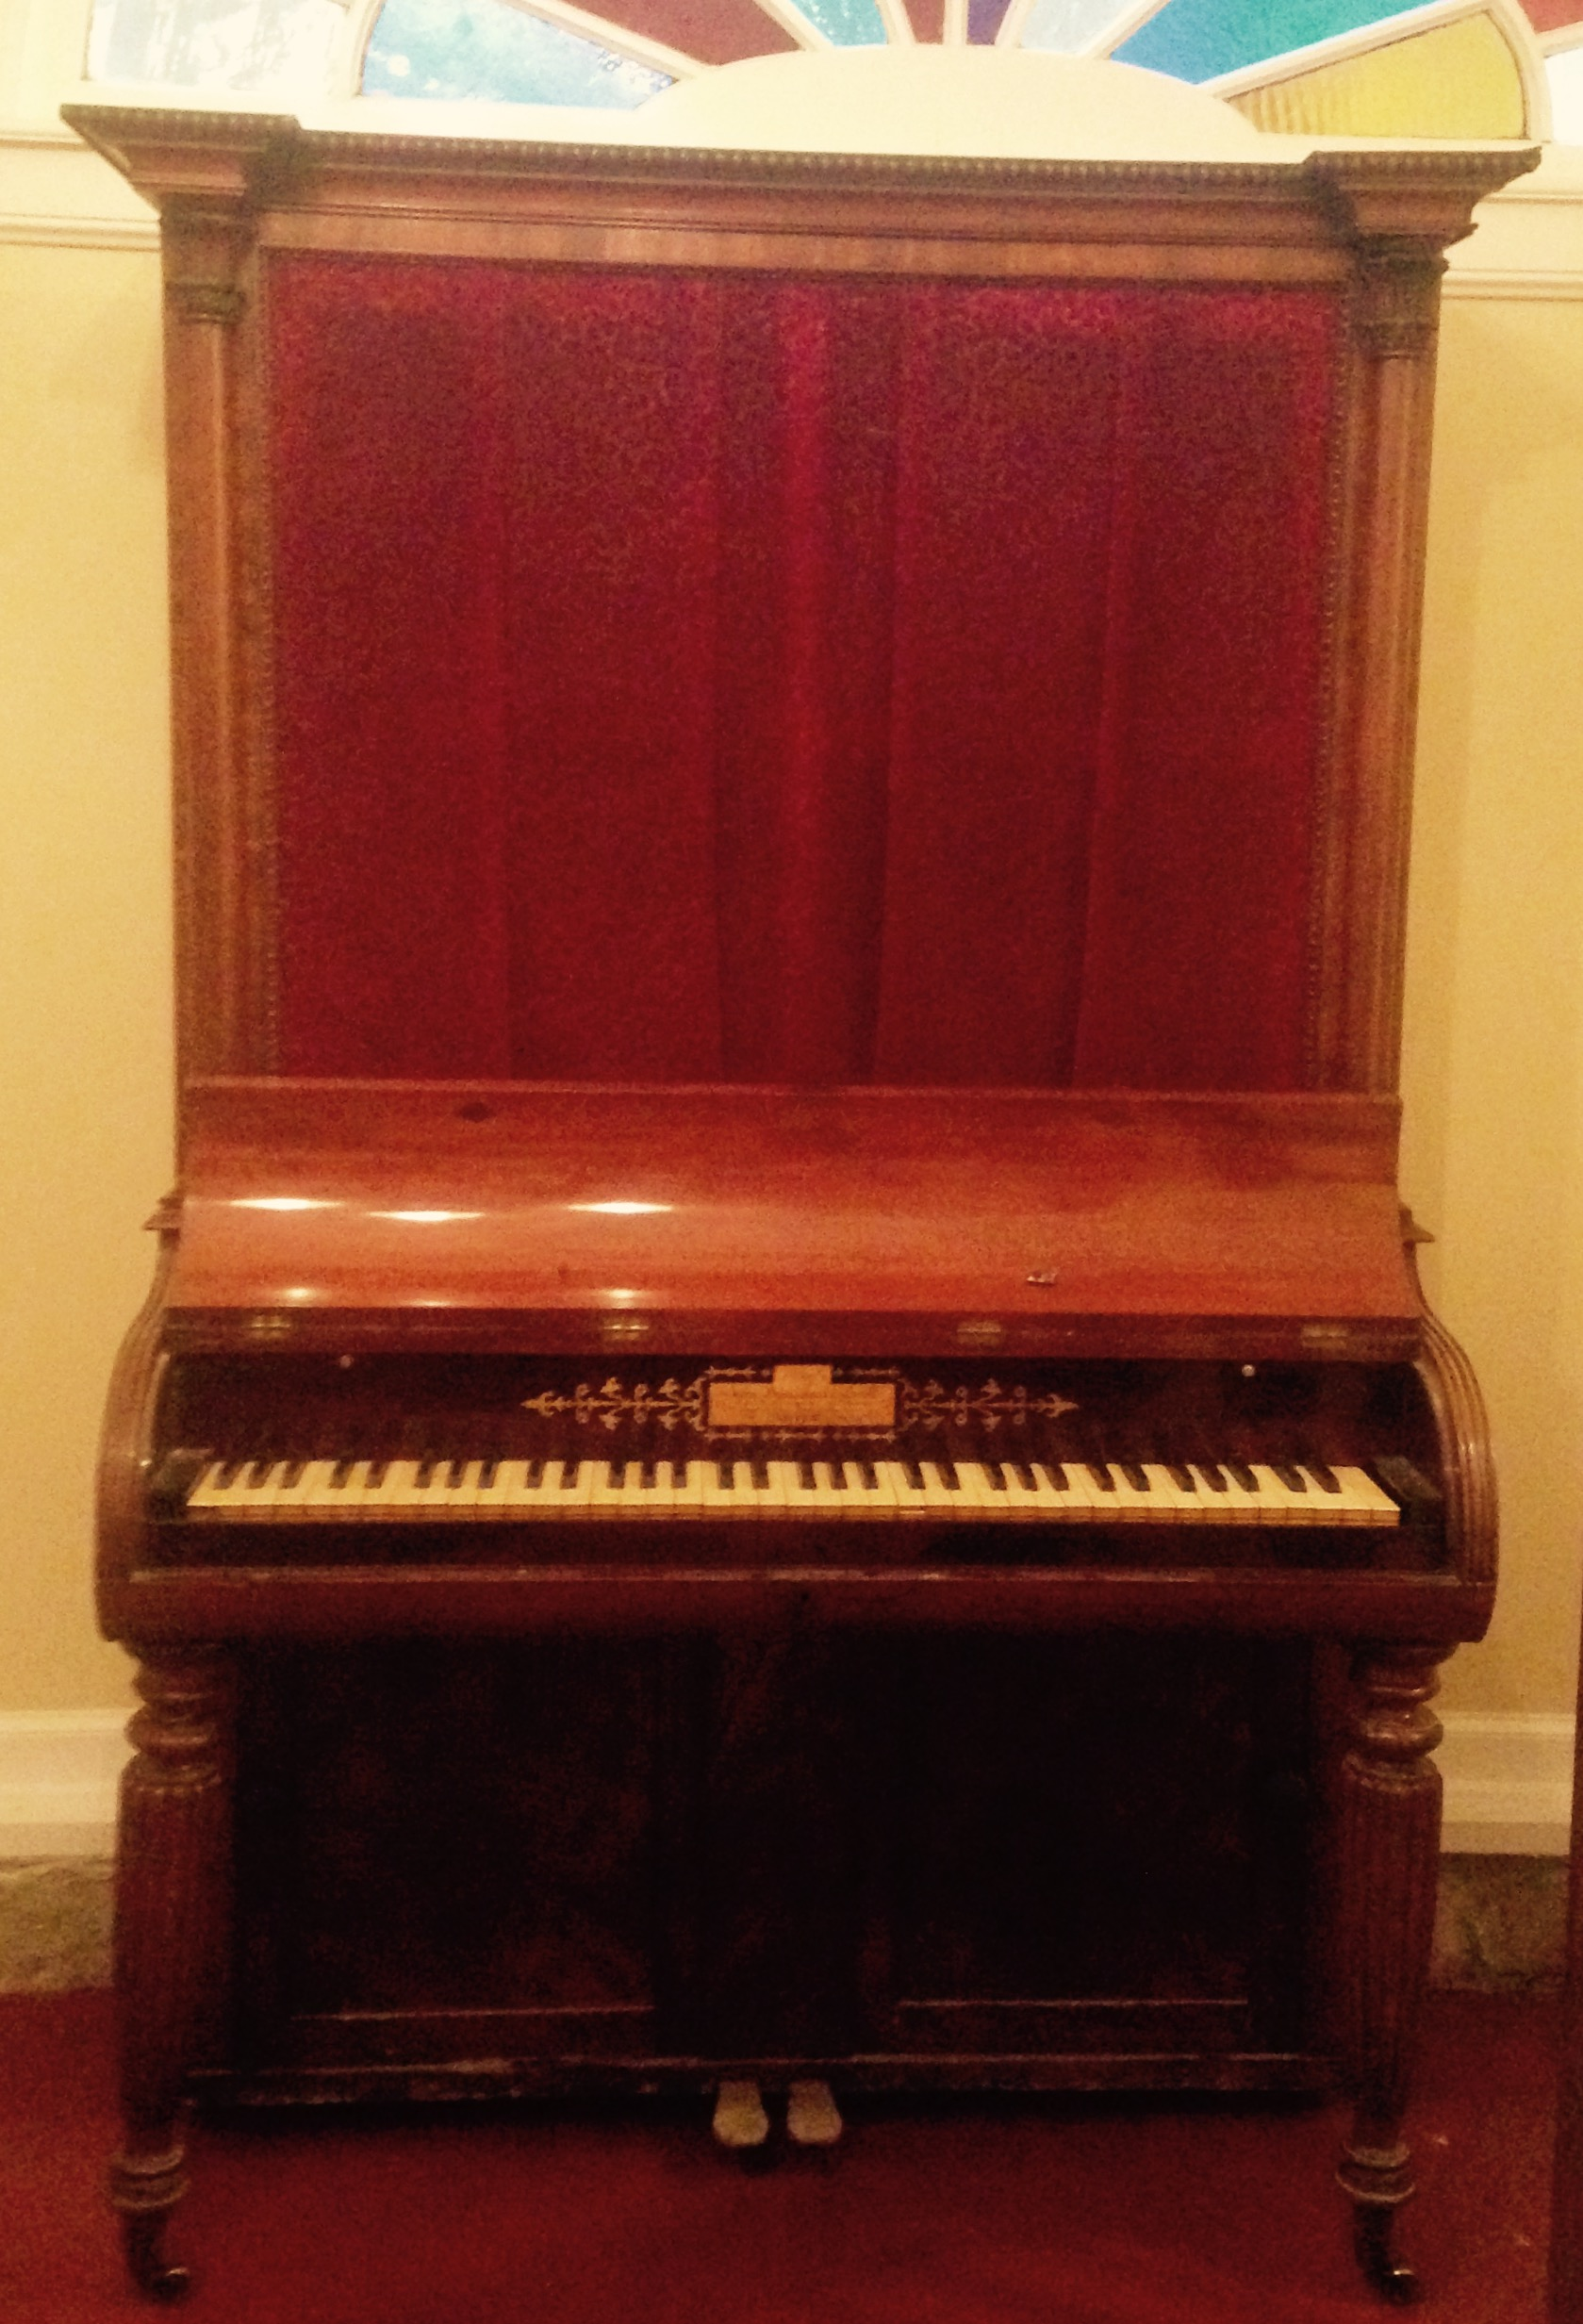 Full view of the piano. Note Empire style legs and trim.